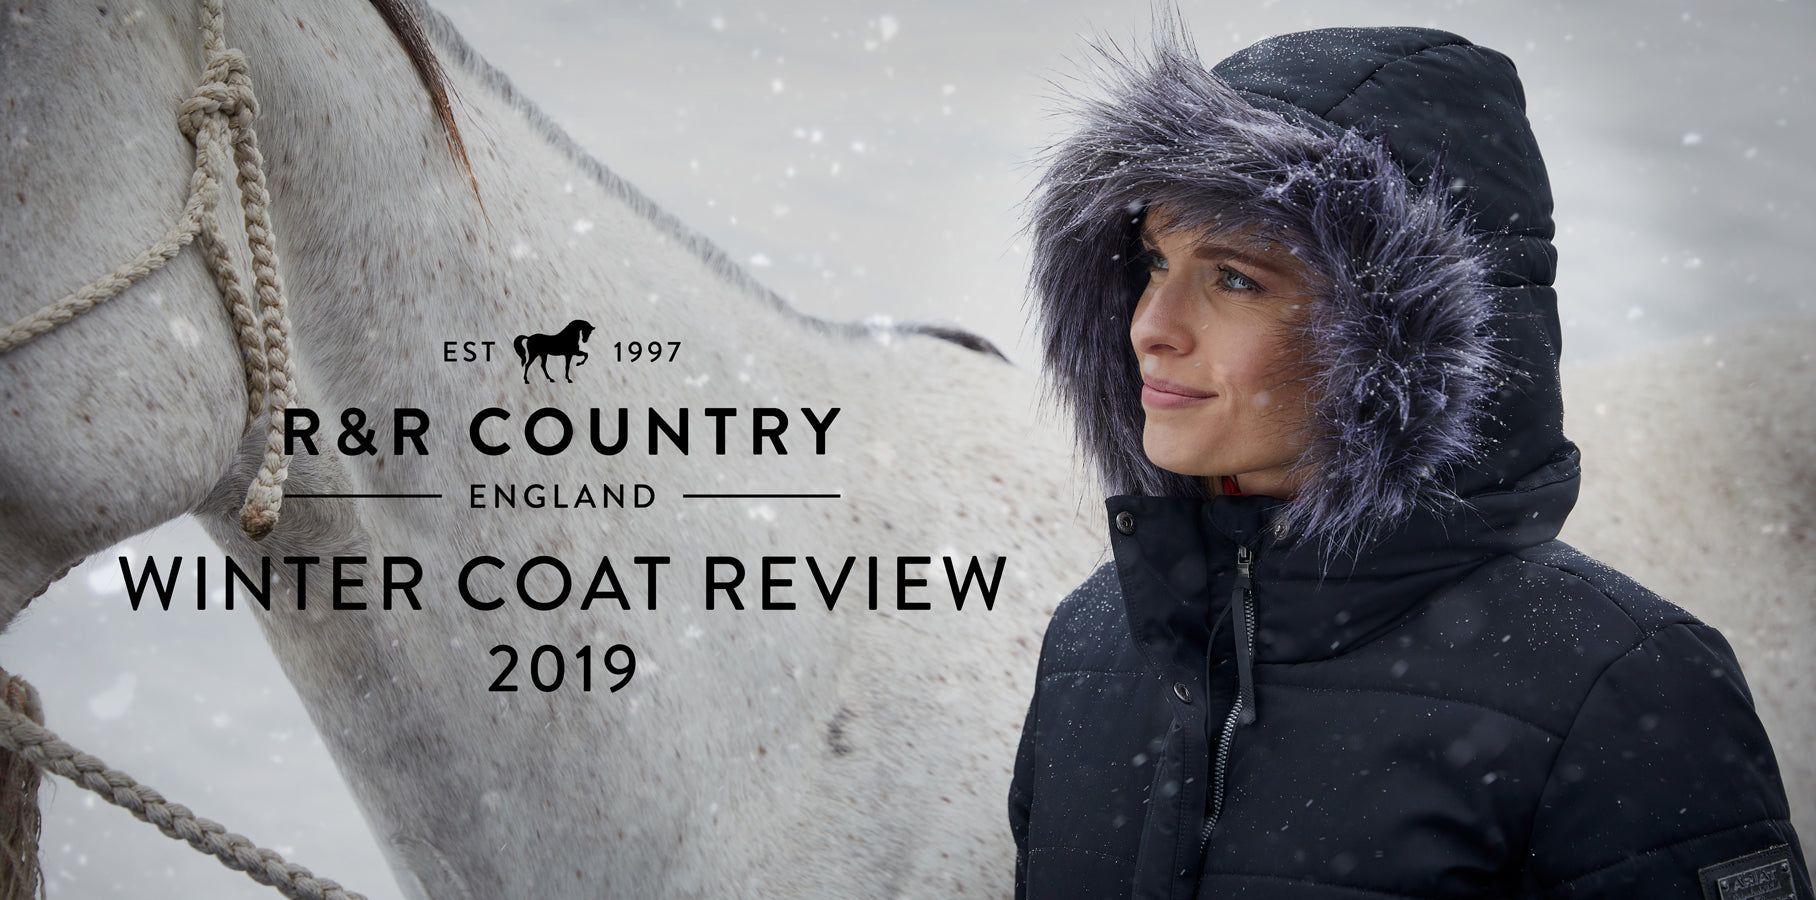 Winter coat review 2019 this season coats 2019 winter jackets